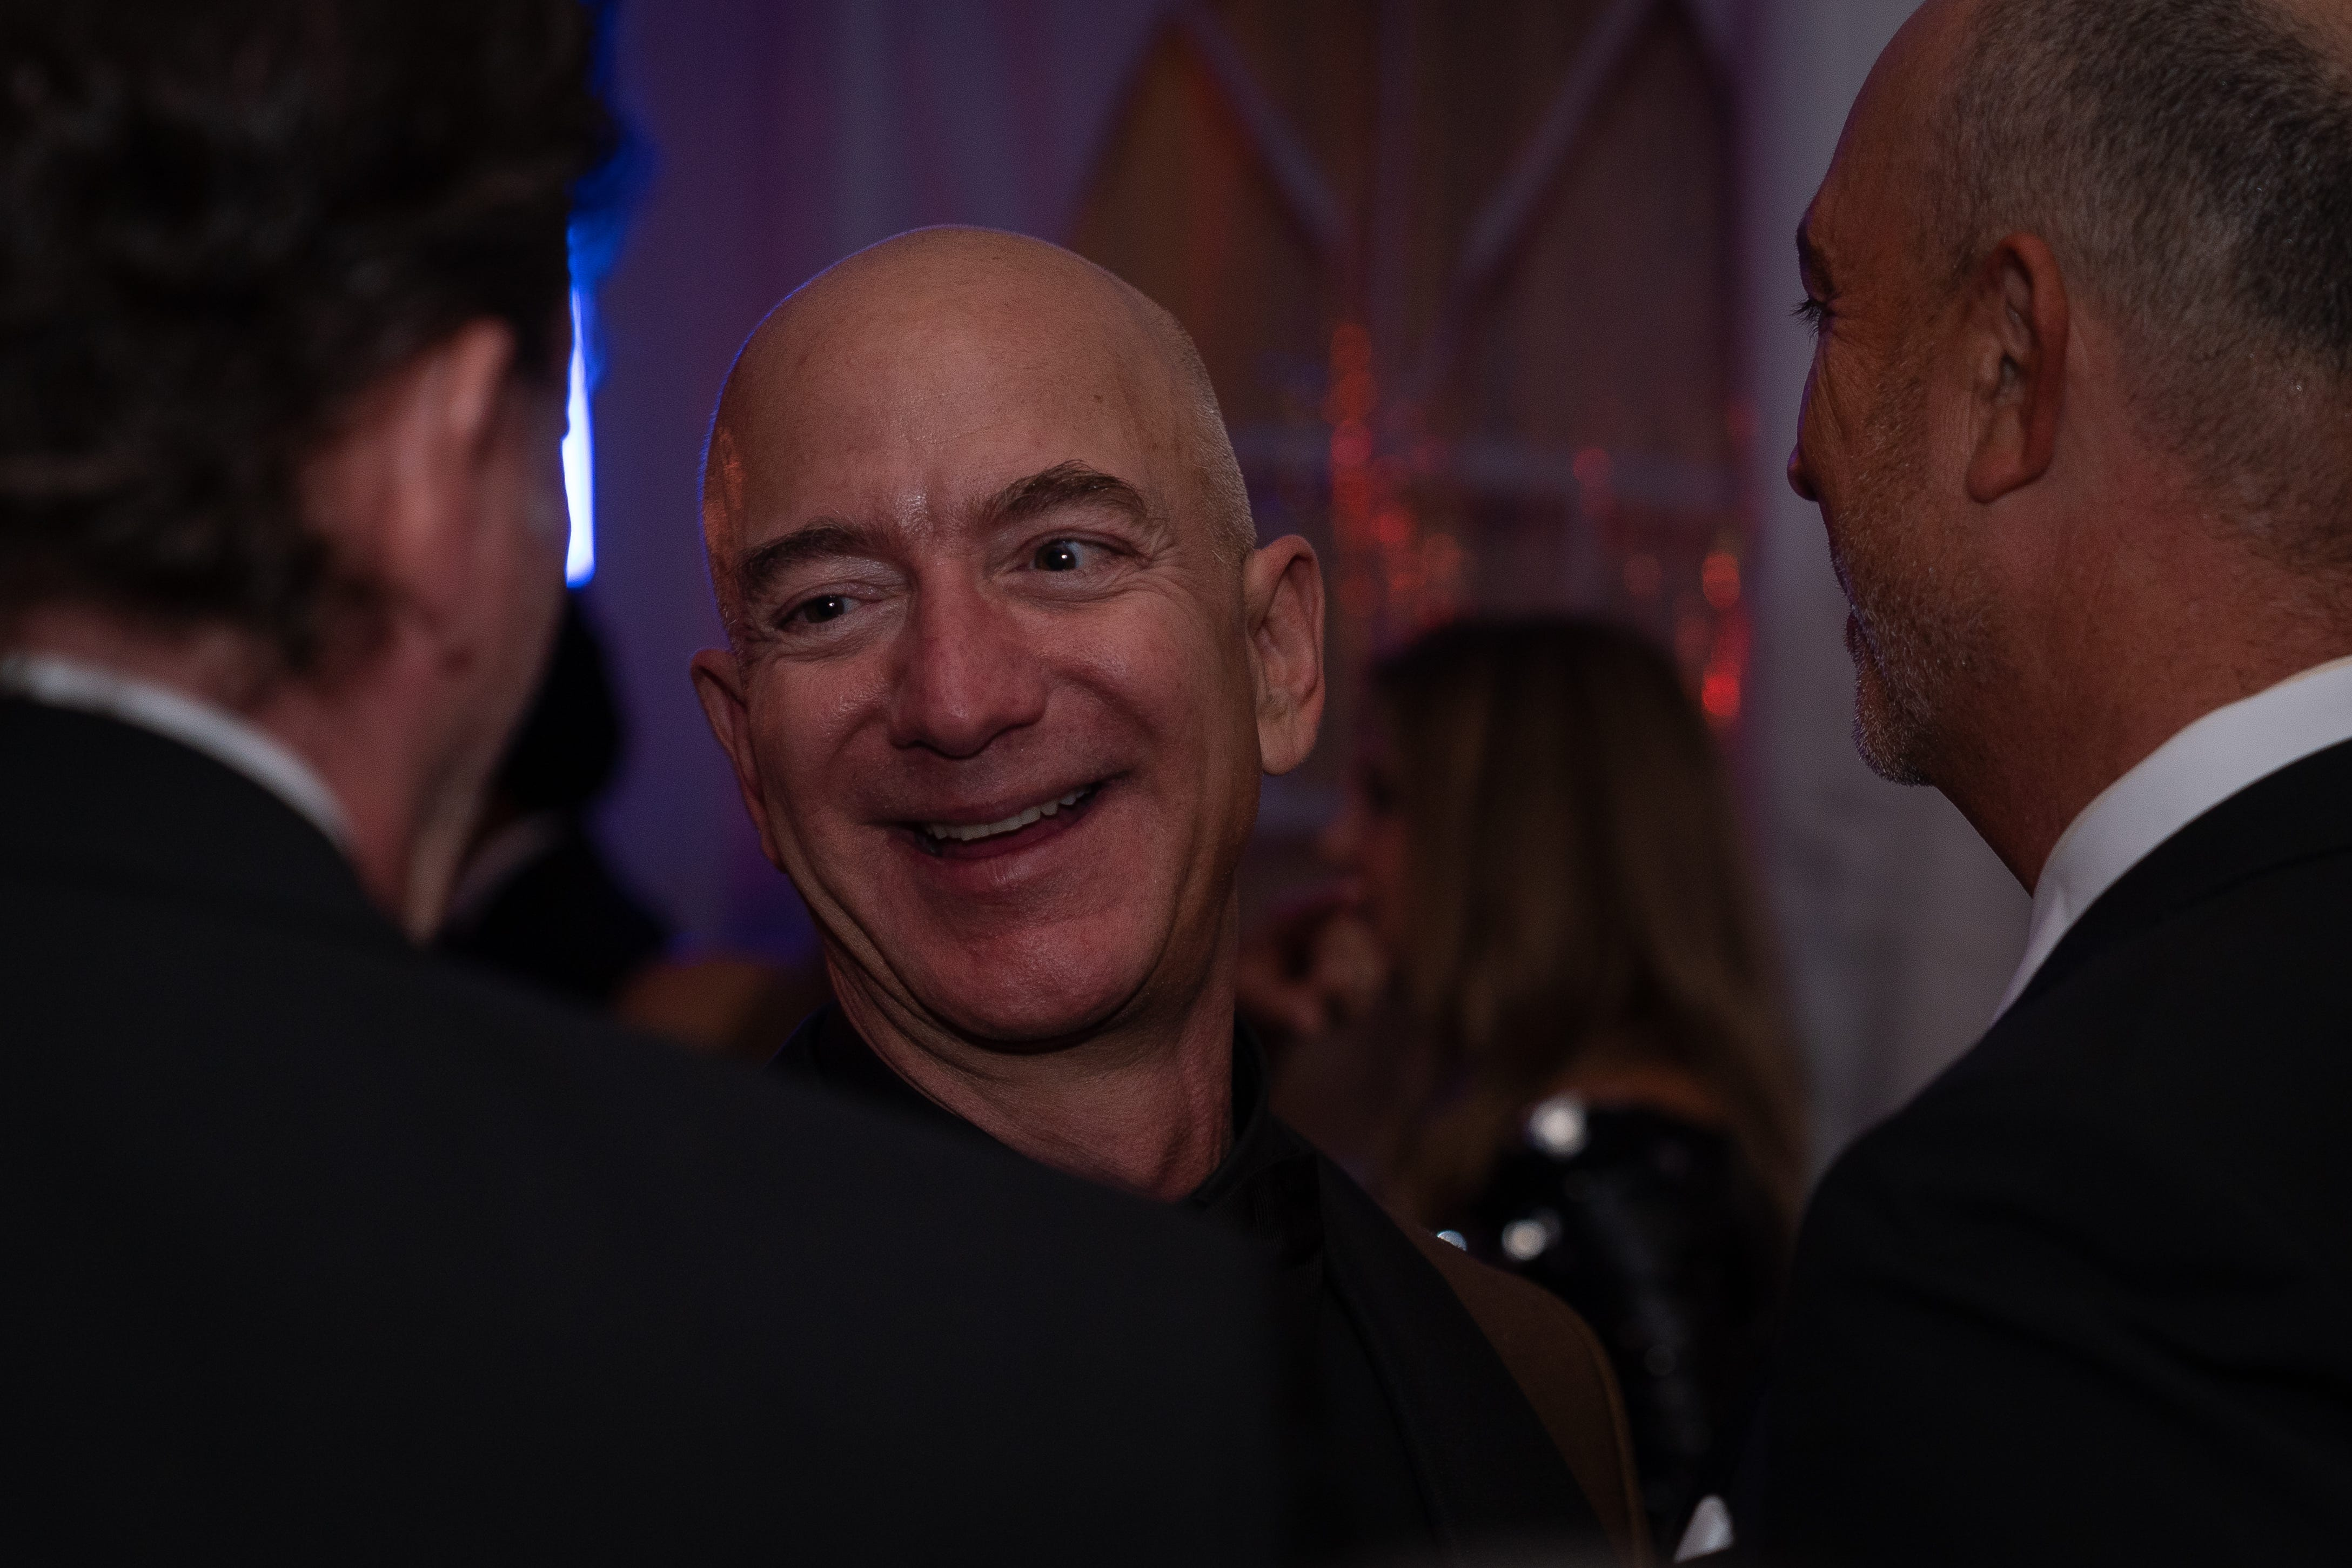 Jeff Bezos, richest man in the world, was a surprise guest at this Kentucky Derby party